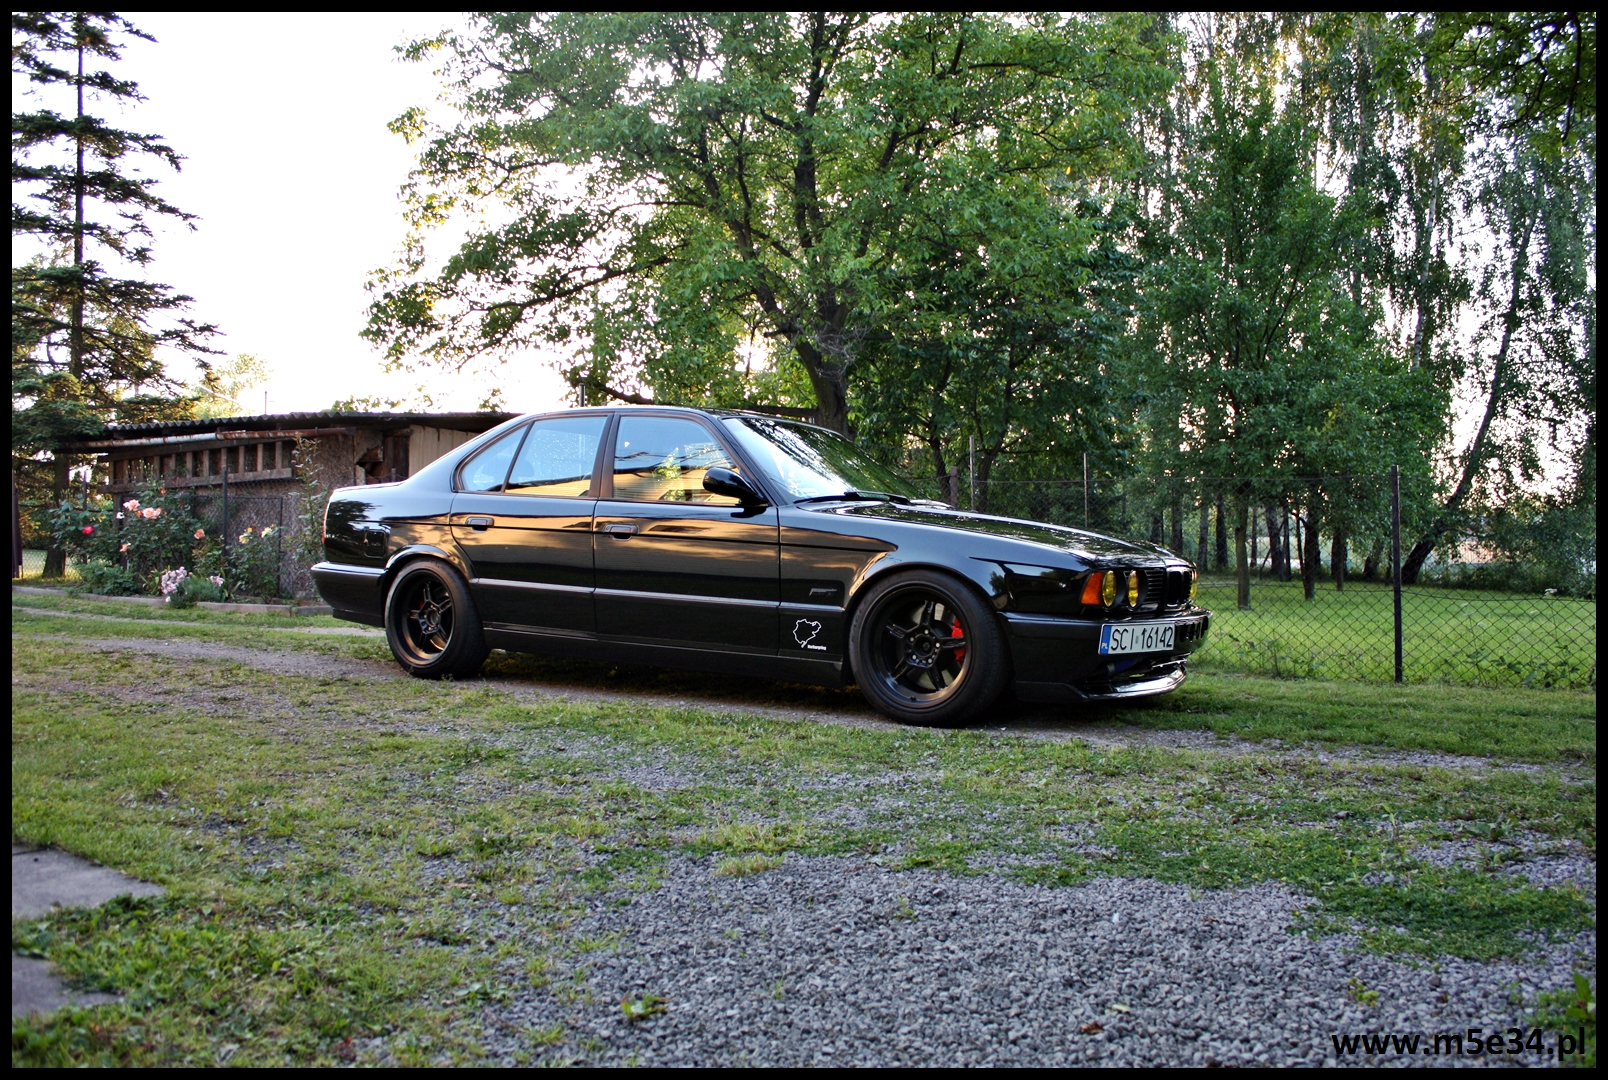 Venom M5 Turbo From Poland Bmw M5 Forum And M6 Forums